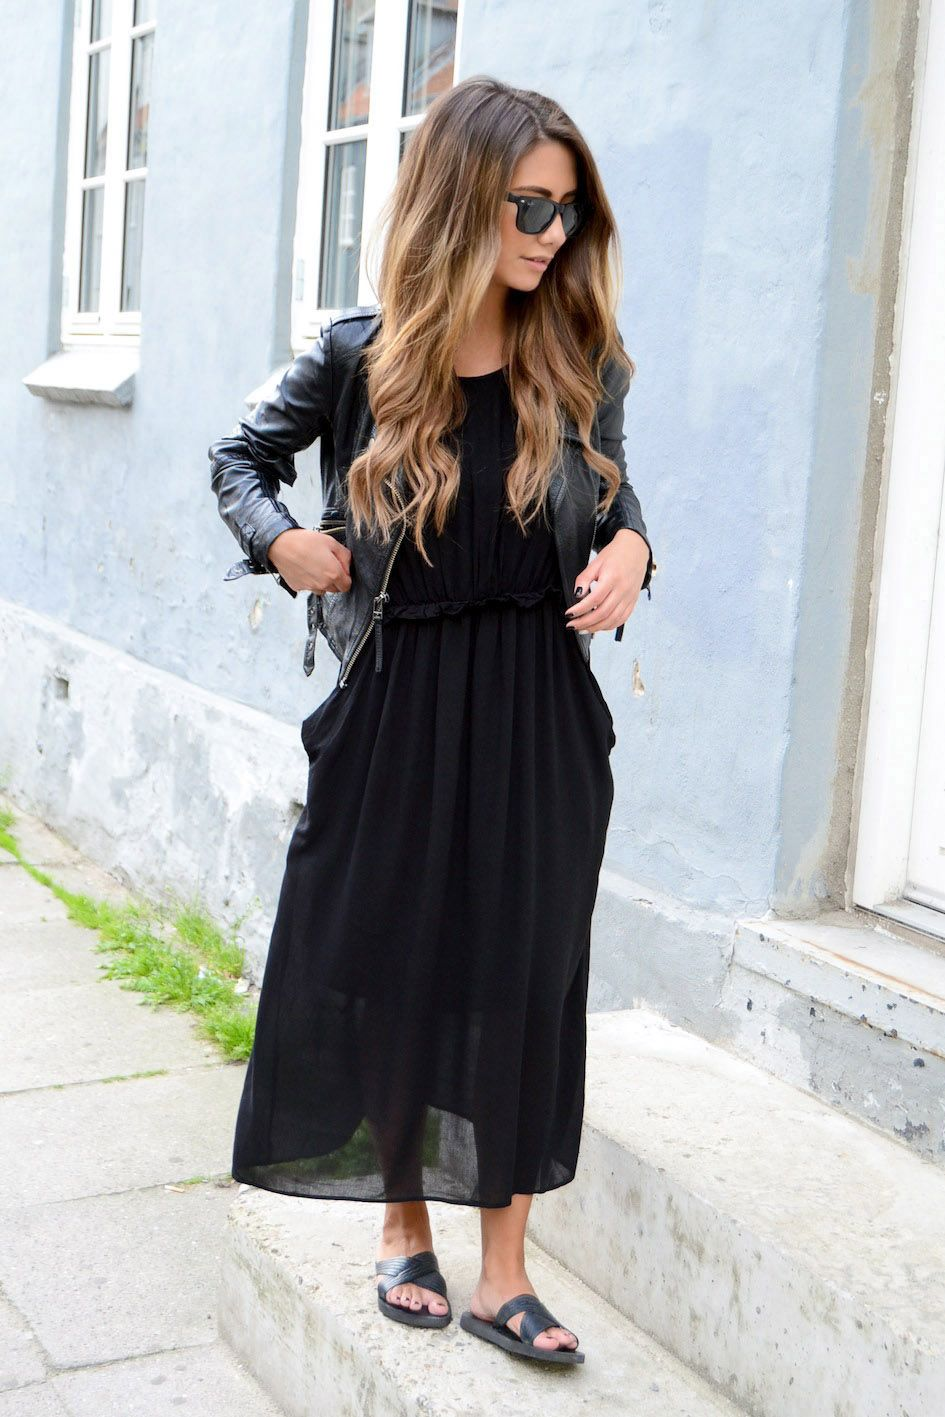 Black leather jacket maxi transparent dress sandals. Street spring clothing women style @roressclothes closet ideas apparel fashion ladies outfit